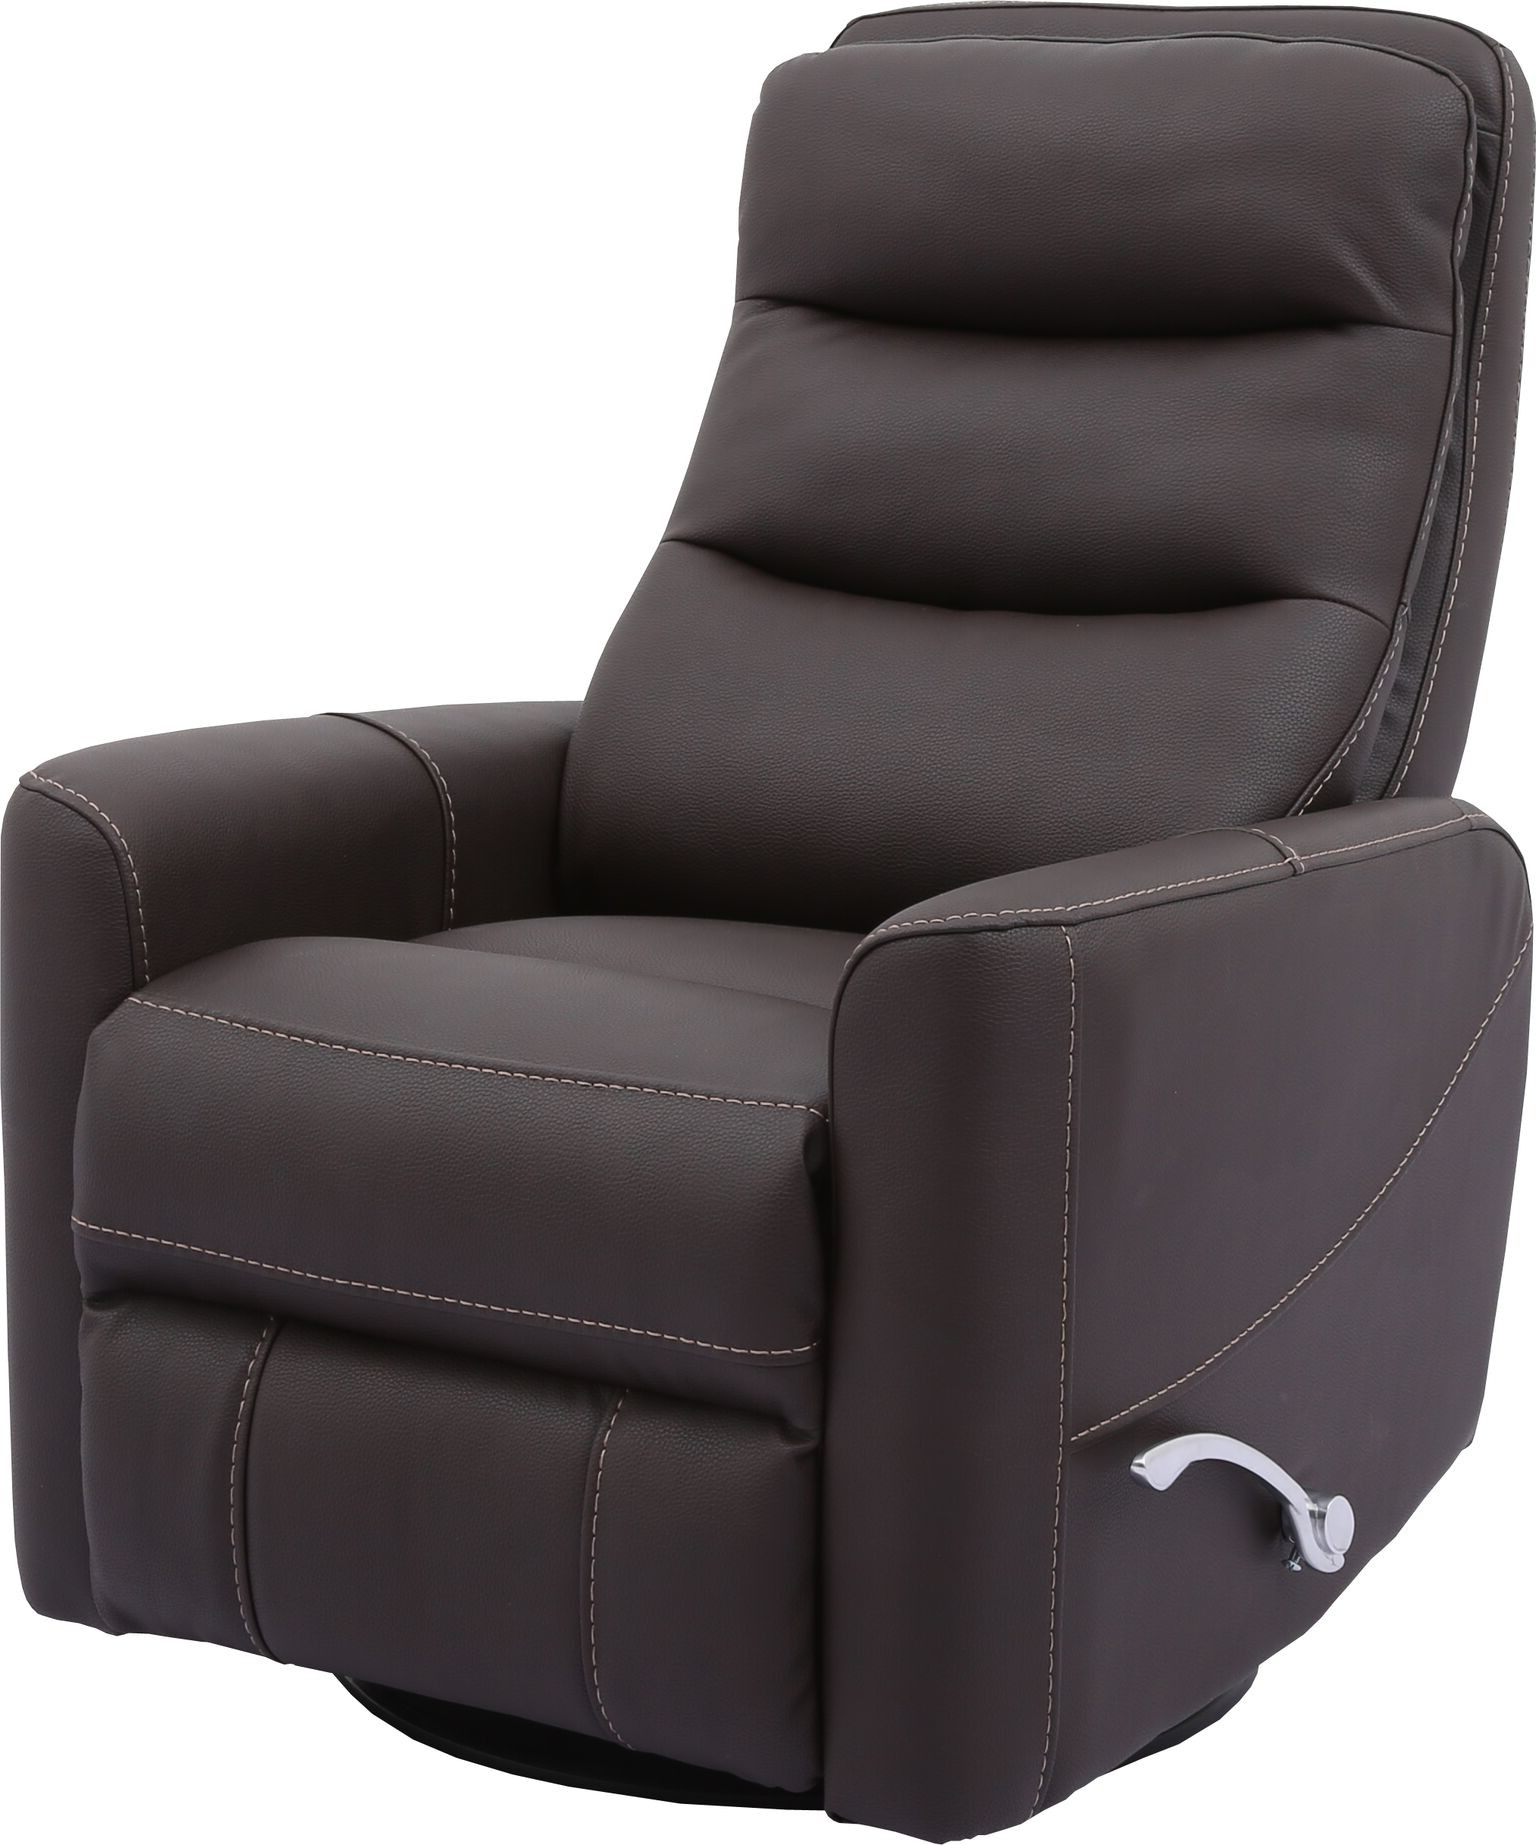 Hercules Chocolate Swivel Glider Recliner With Articulating Headrest In Current Hercules Chocolate Swivel Glider Recliners (View 1 of 20)